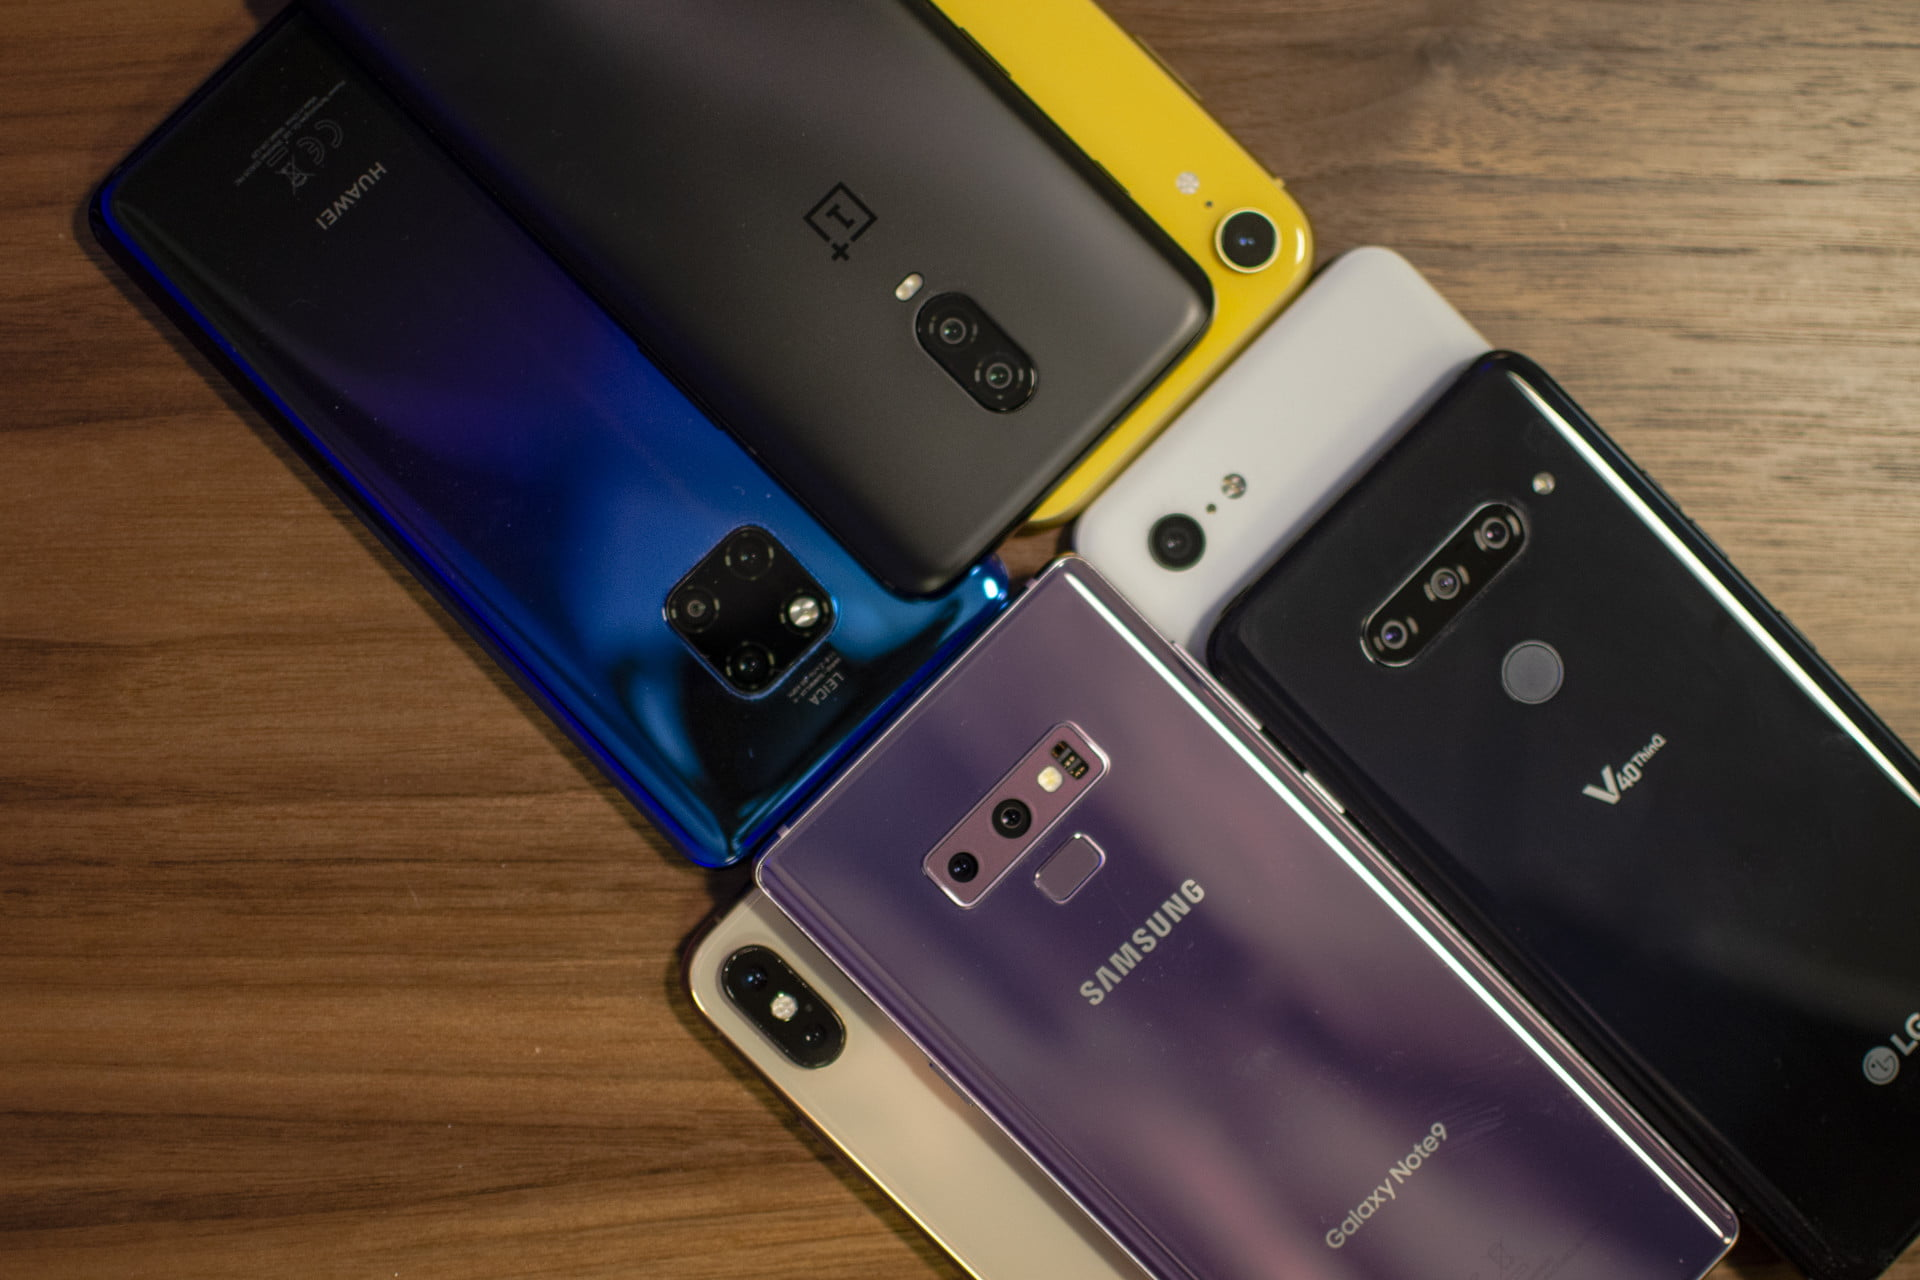 In 2018, Smartphone Sales Stopped Growing For The First